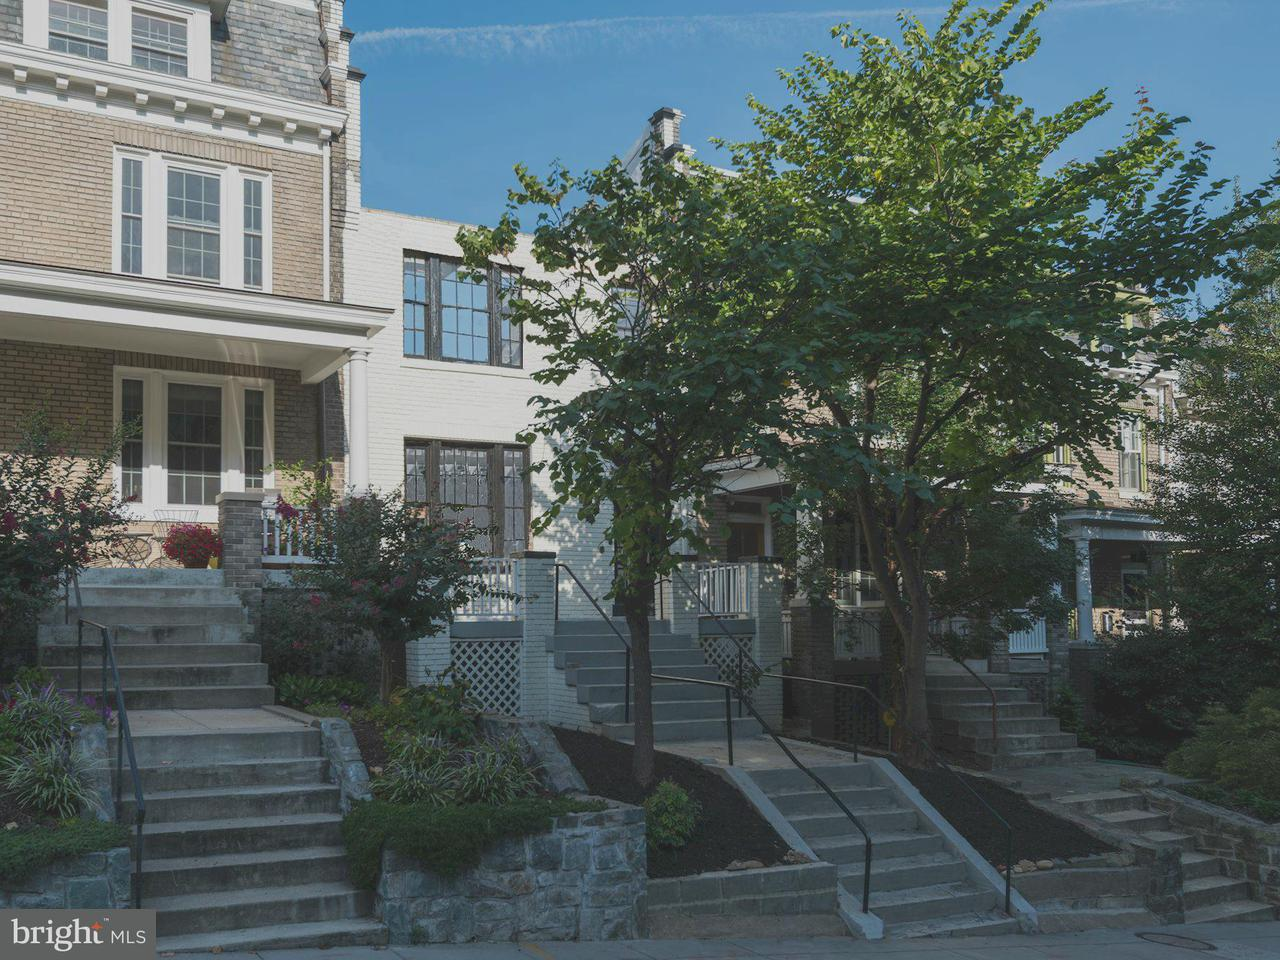 Townhouse for Sale at 2910 18TH ST NW 2910 18TH ST NW Washington, District Of Columbia 20009 United States